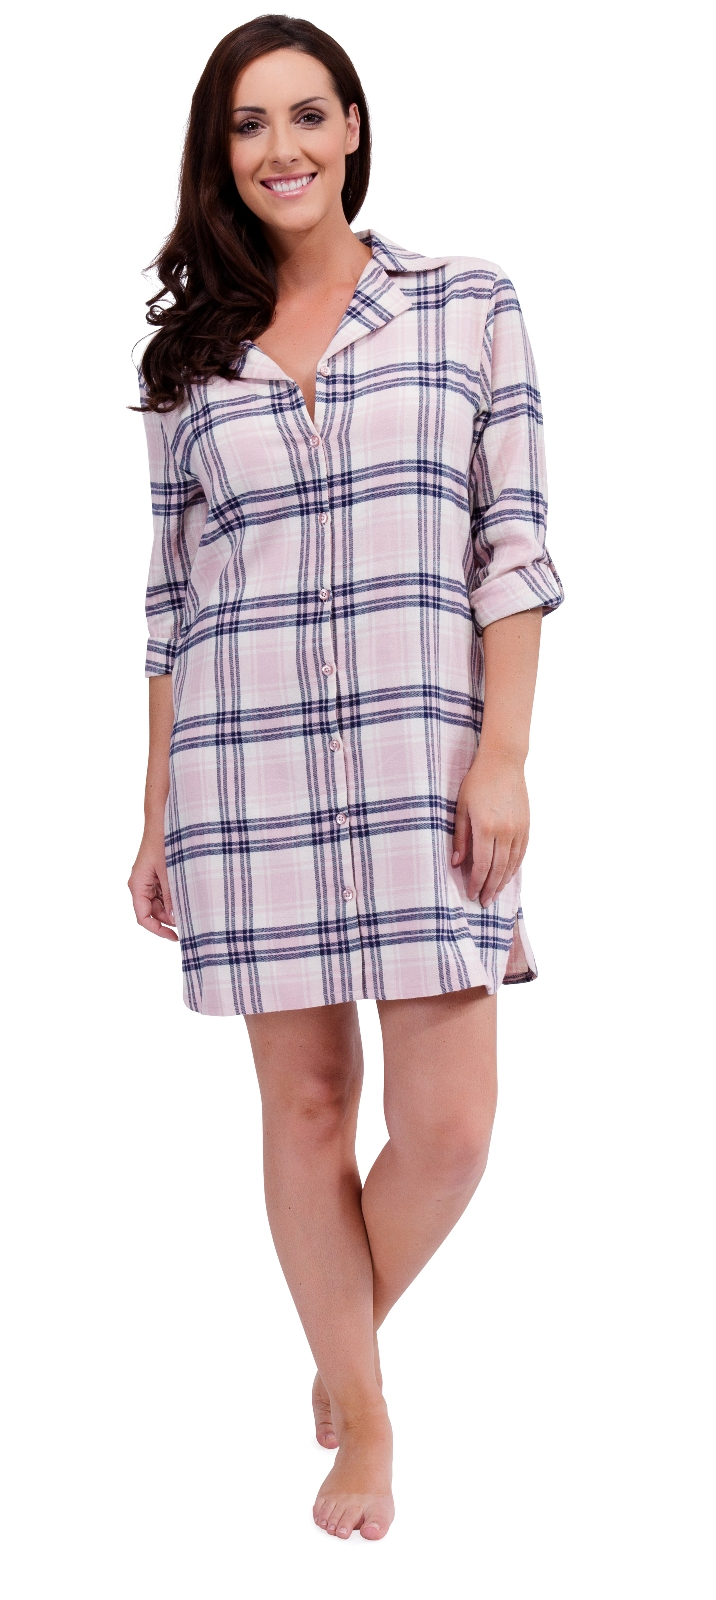 Staying in bed? That's the perfect time to wear our high quality Women's Nightshirts. Shop our extensive collection of comfy Women's Nightshirts in a wide variety of styles that allow you to wear your passion around the house.